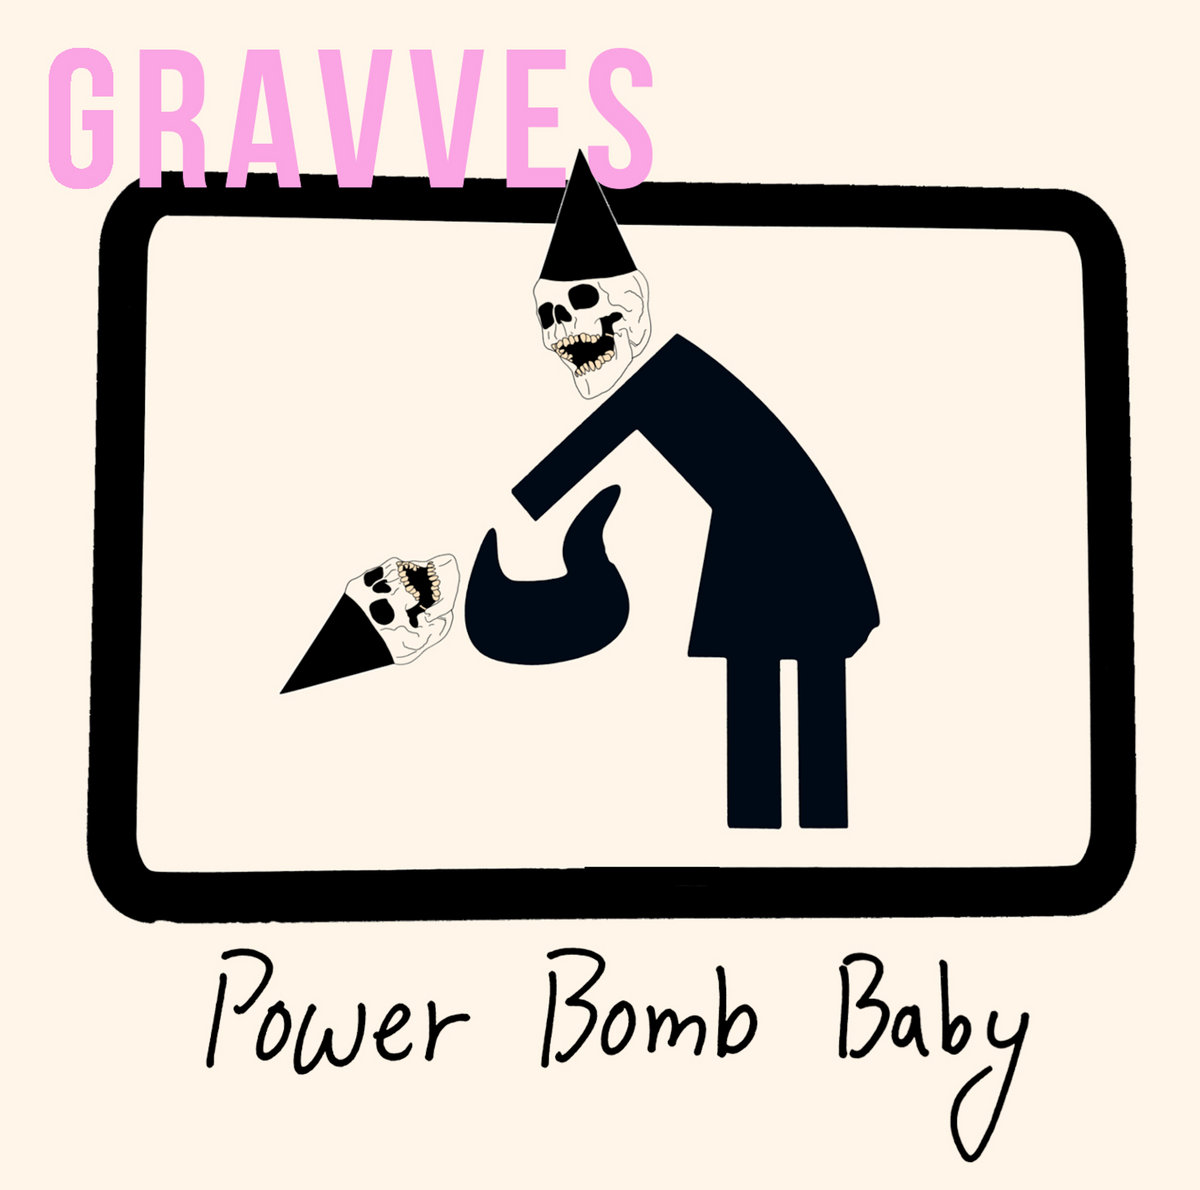 Power Bomb Baby by GRAVVES